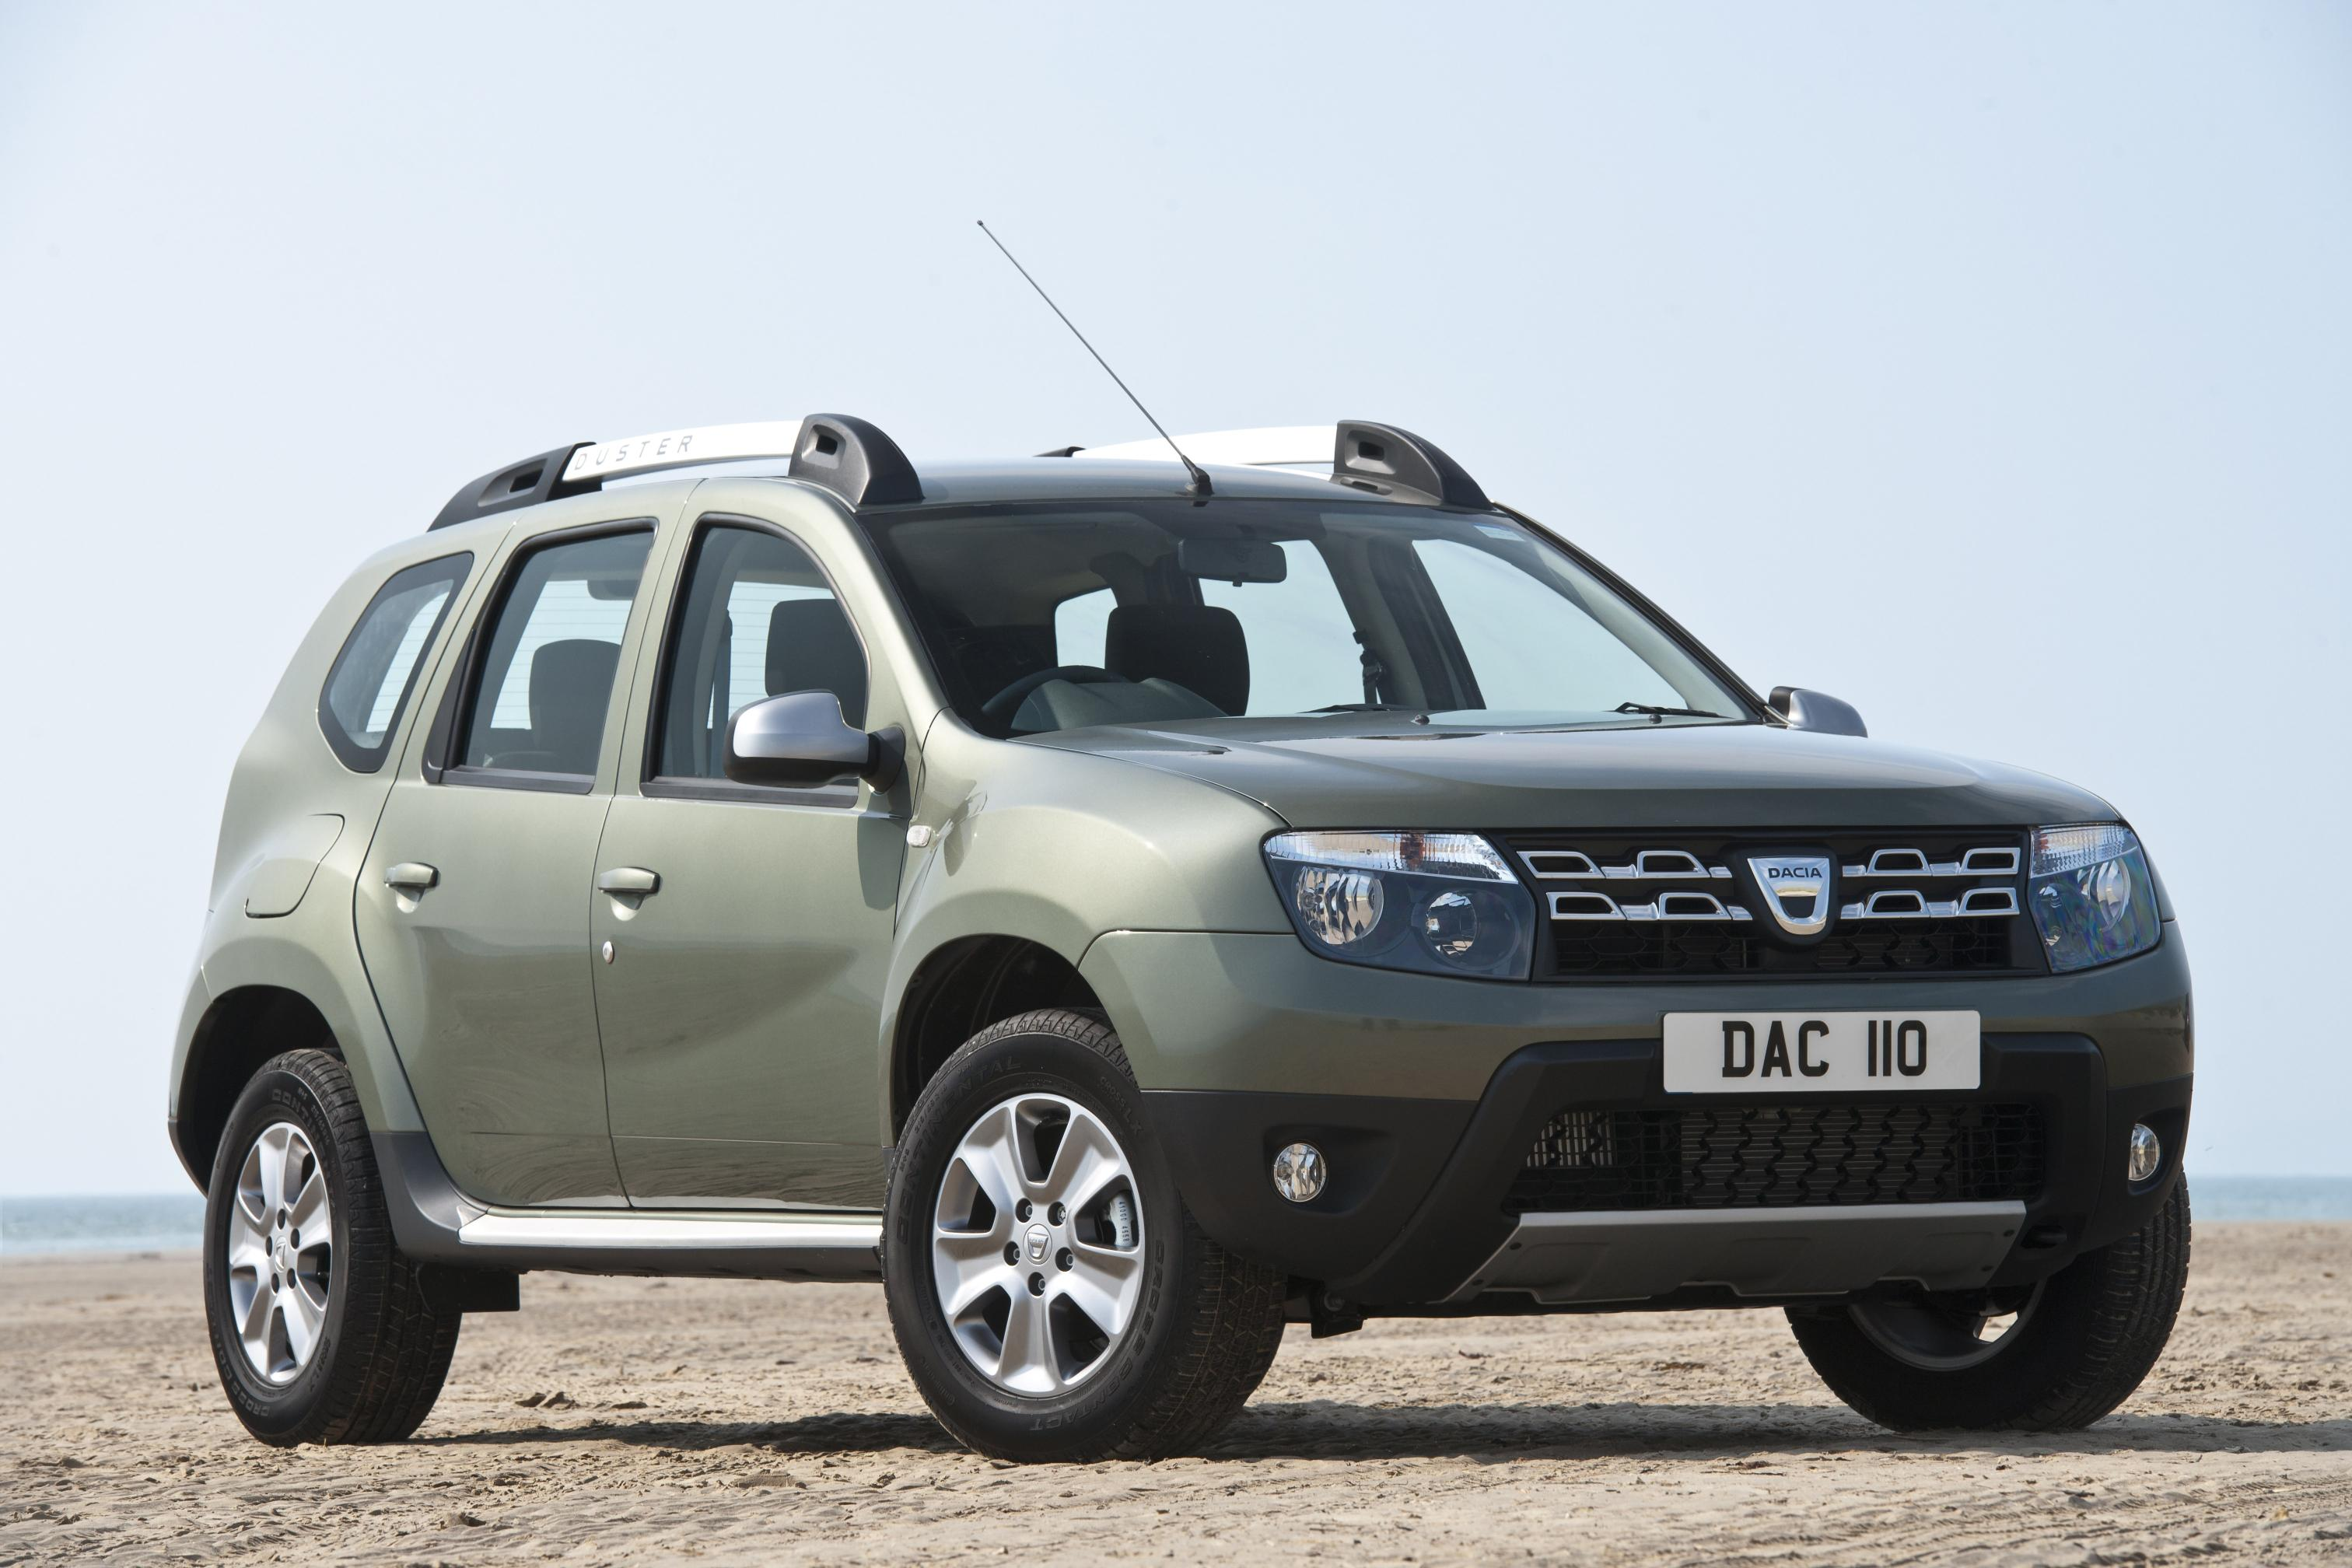 2015 dacia duster facelift for uk market unveiled autoevolution. Black Bedroom Furniture Sets. Home Design Ideas